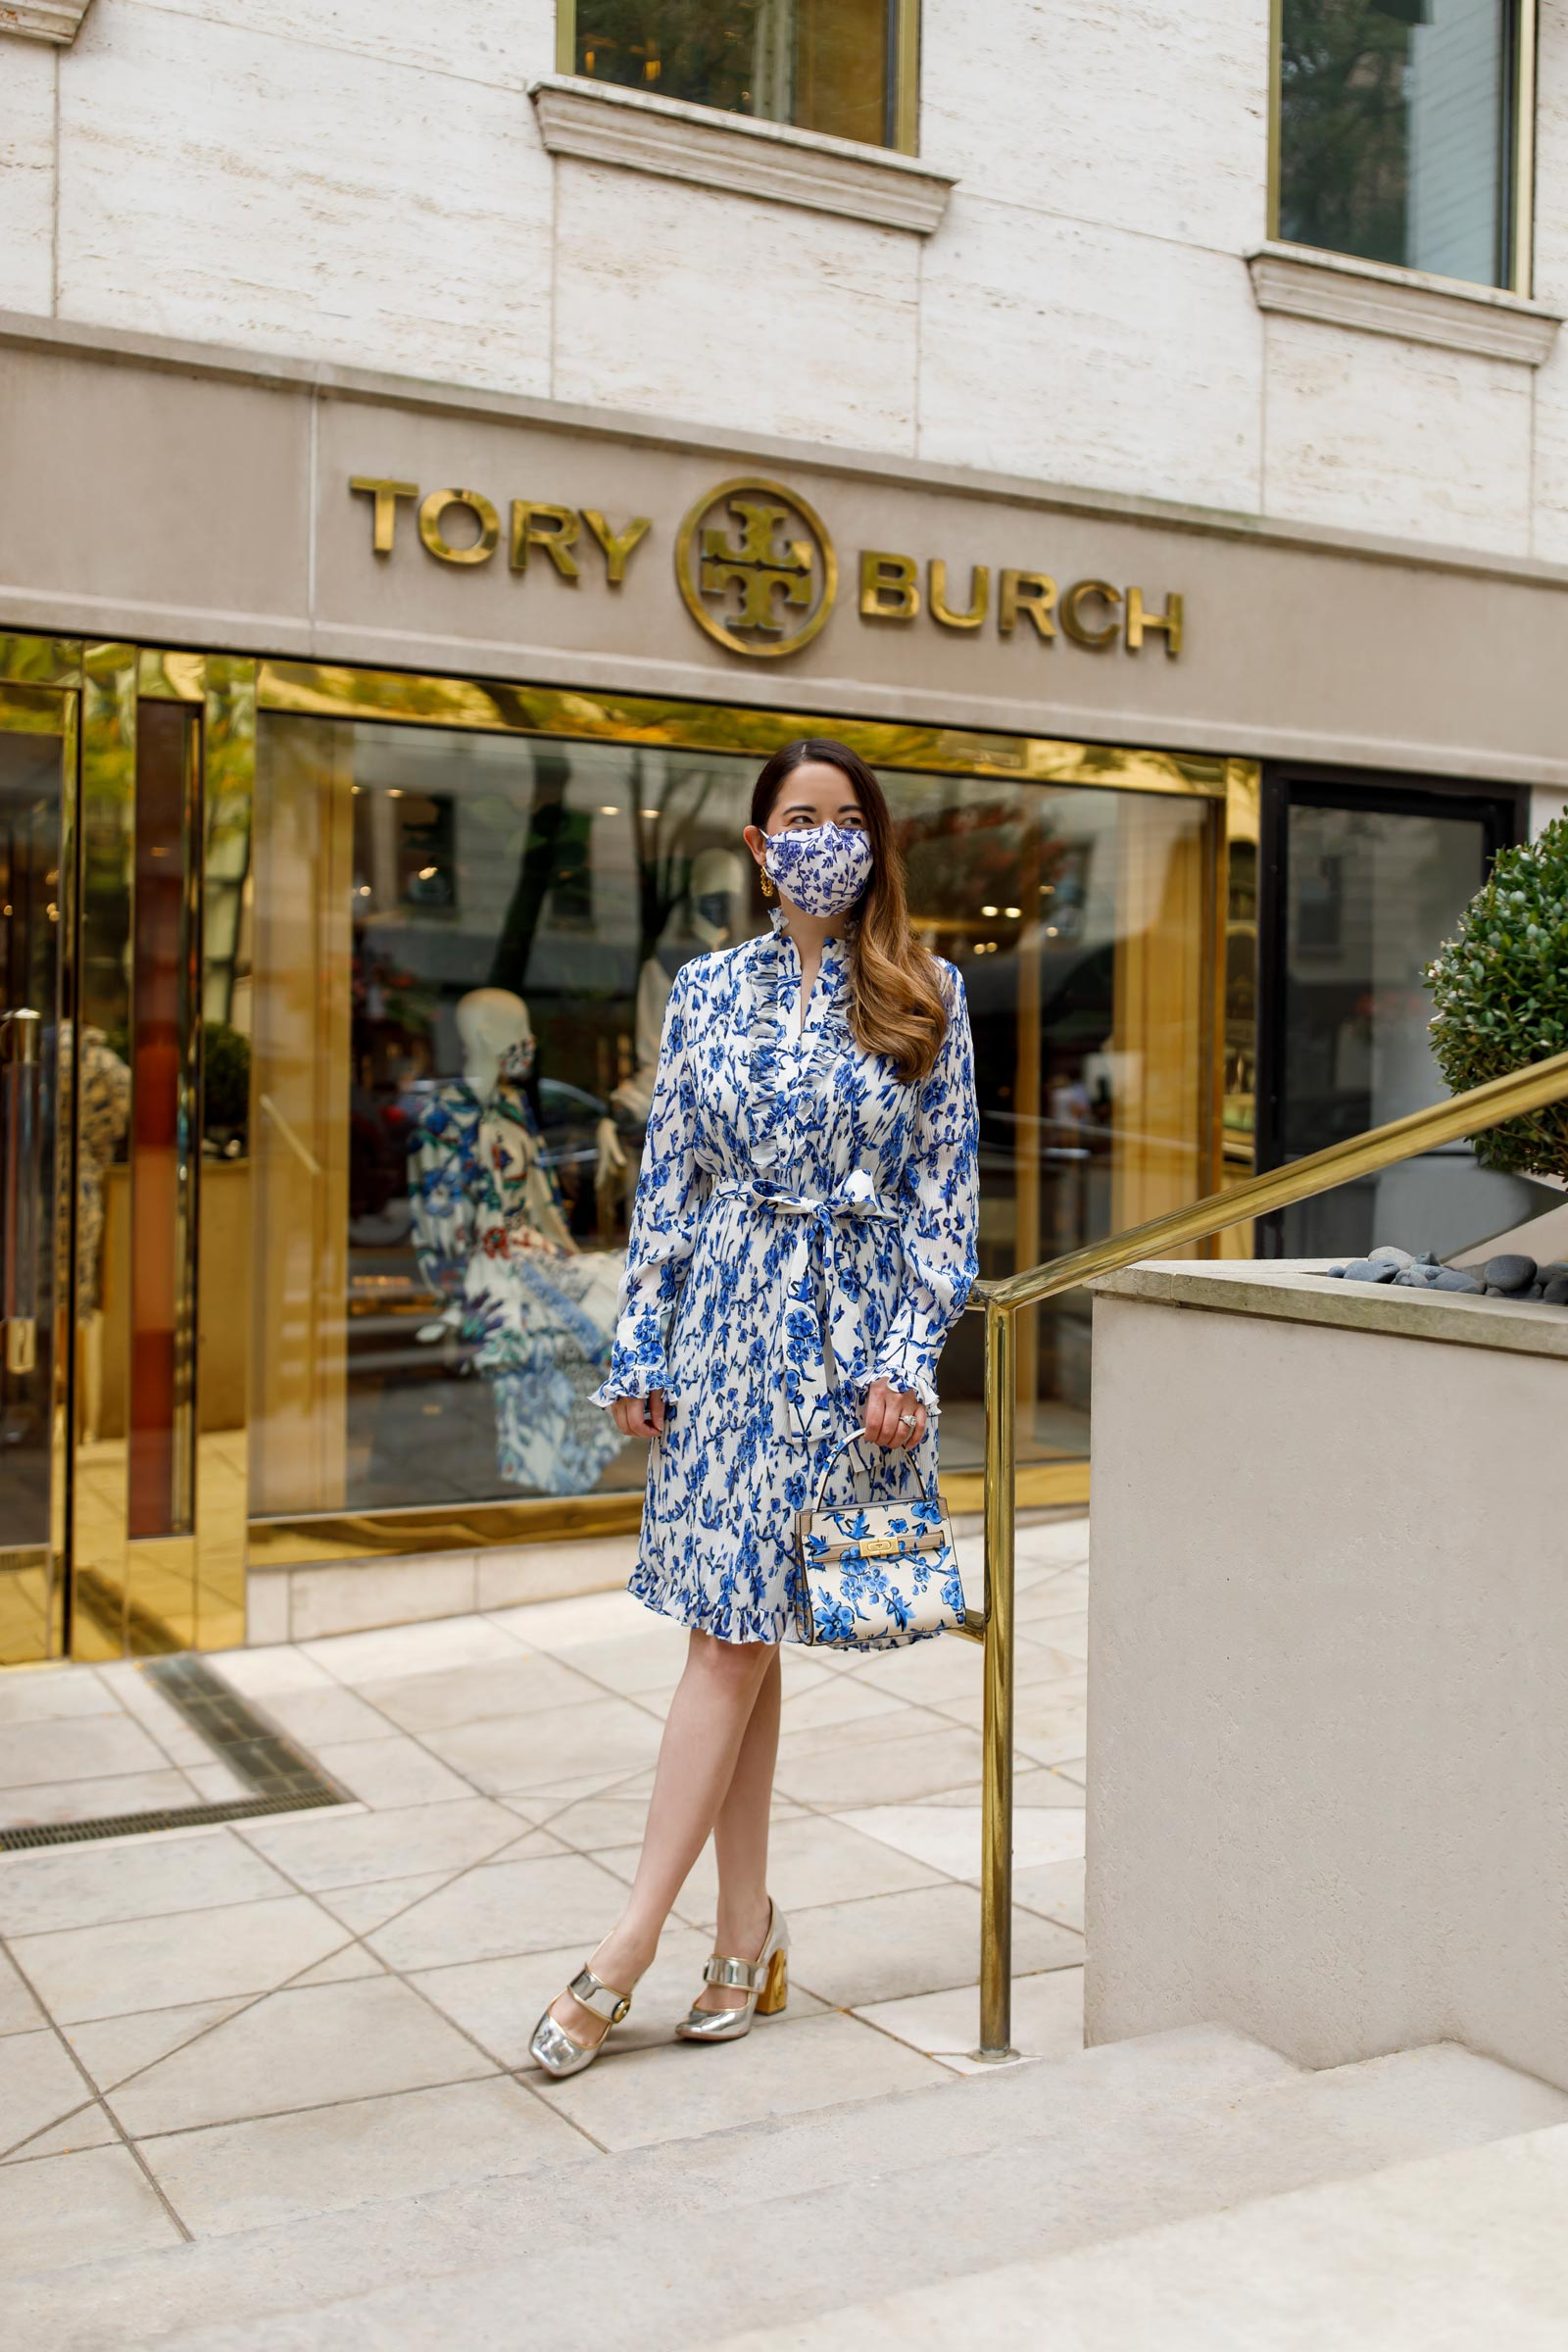 Jennifer Lake Tory Burch Oak Street